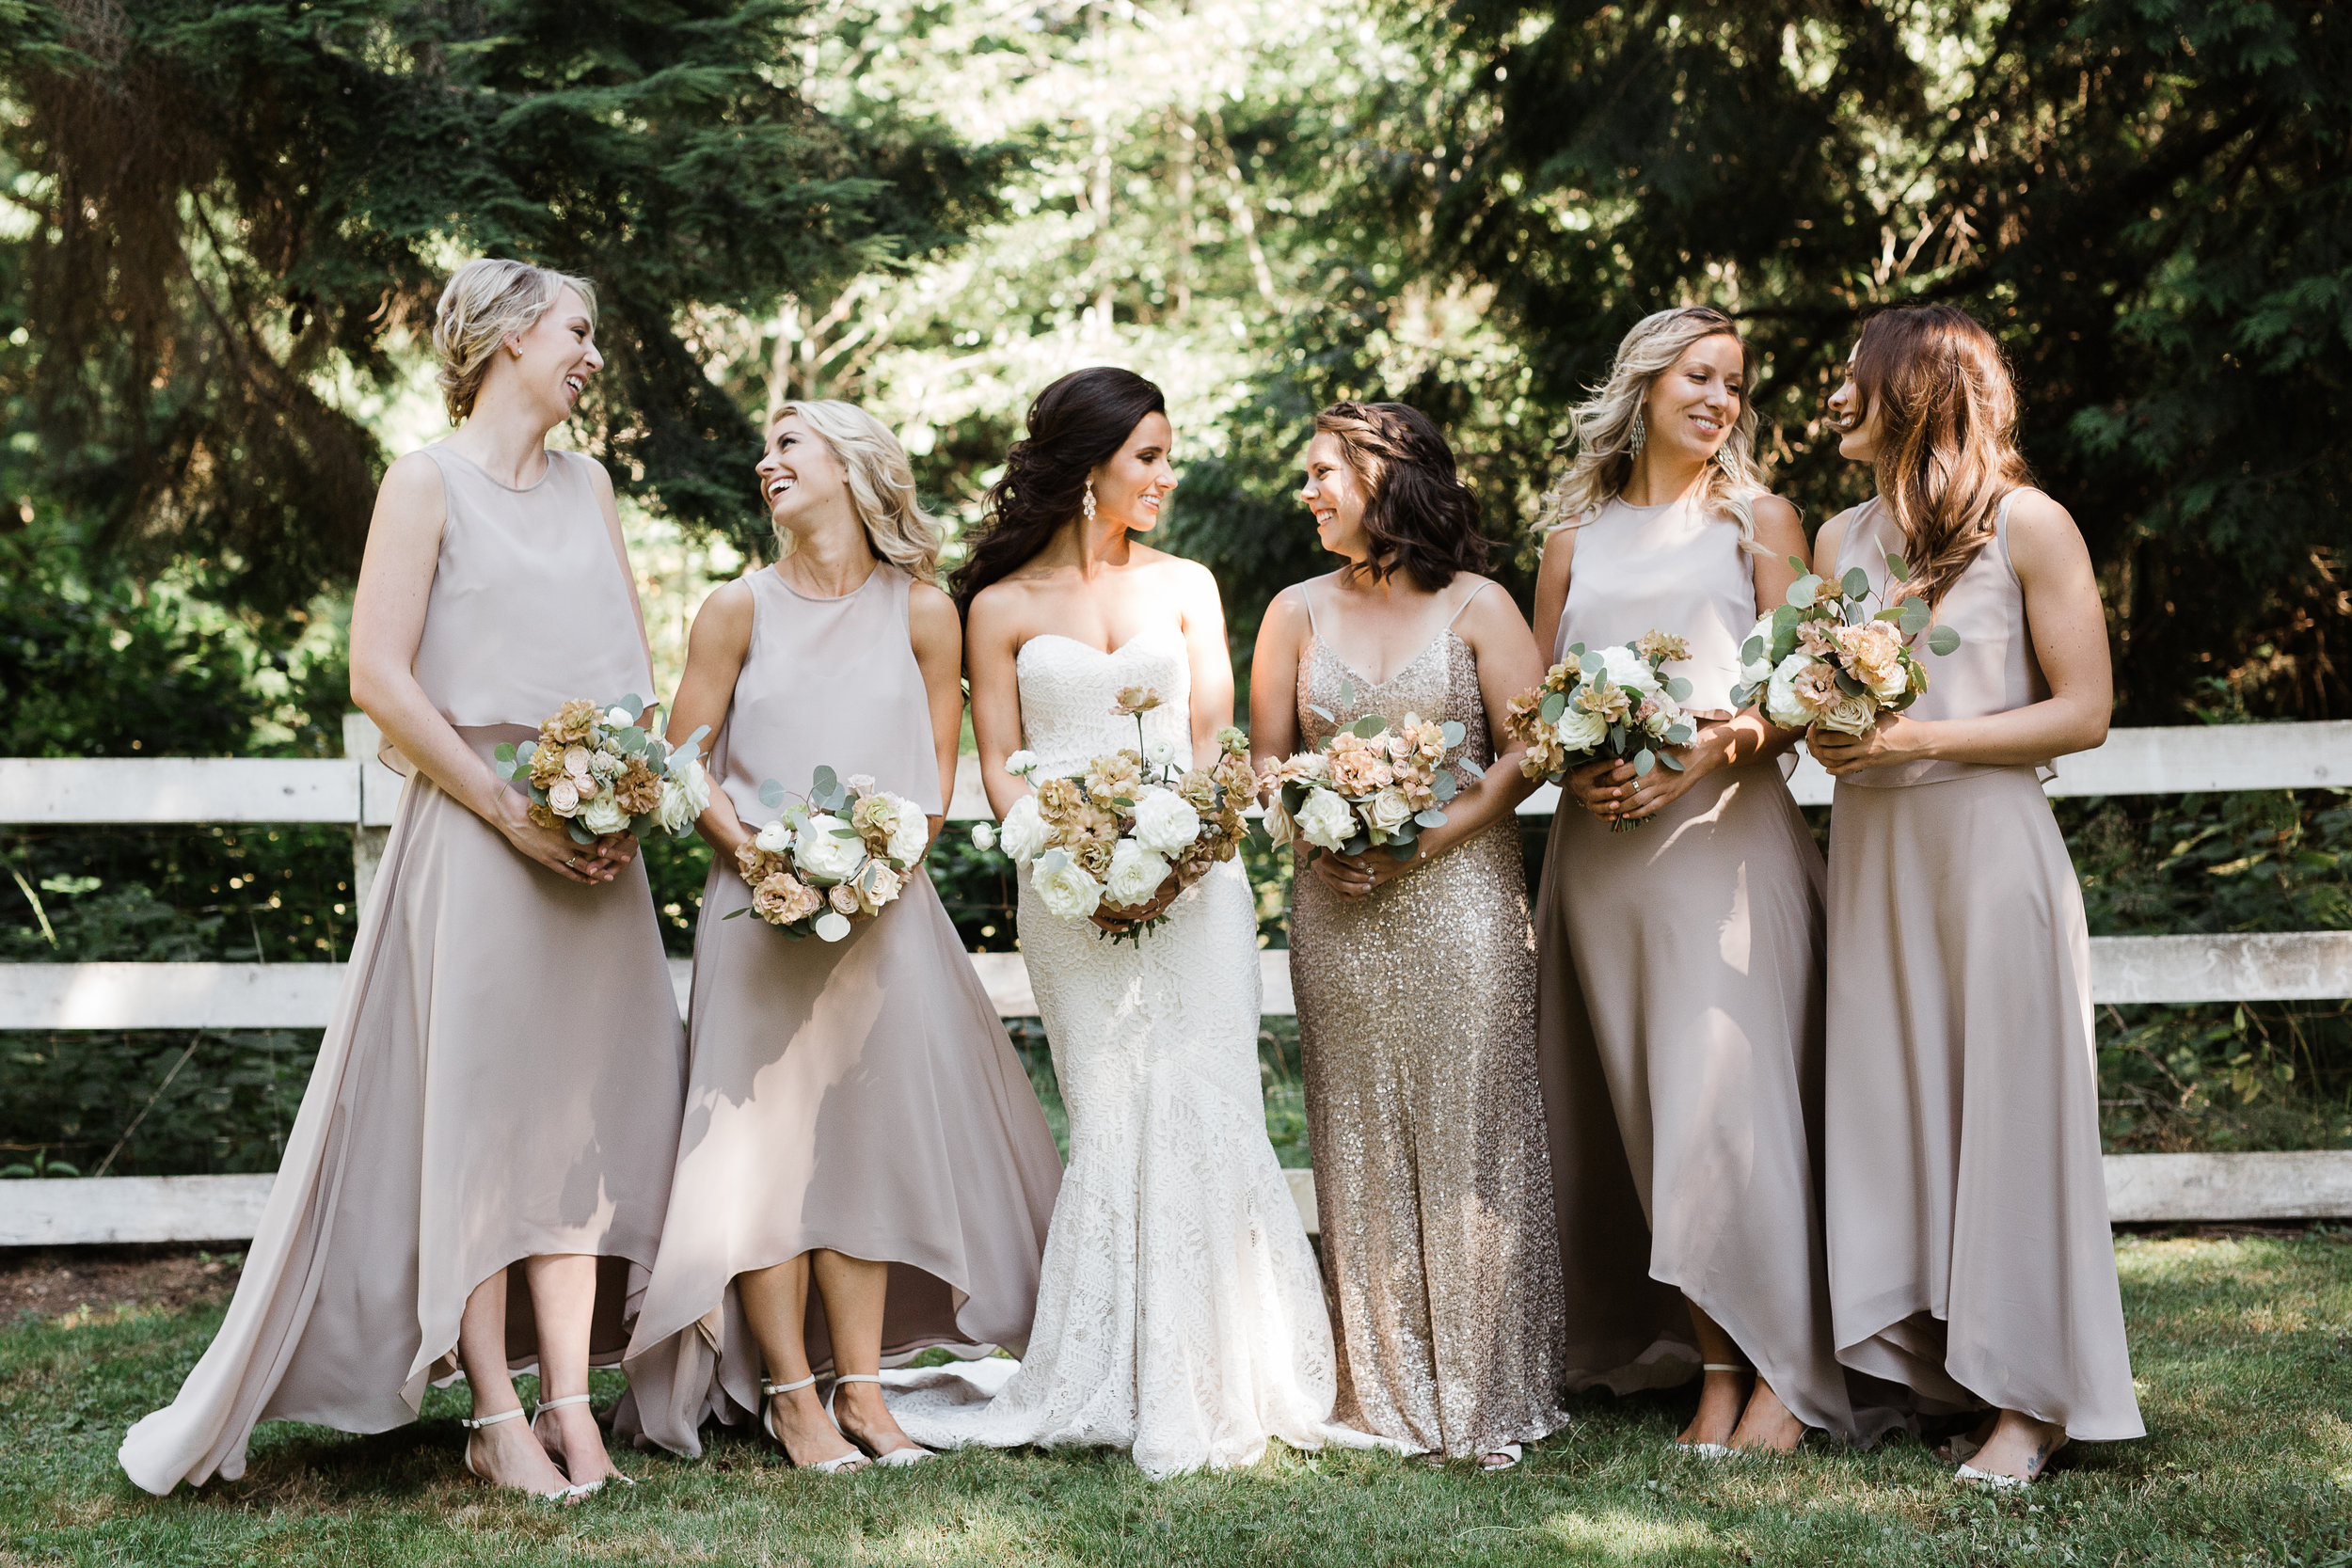 Wild Bloom Floral - Rachel Birkhofer Photography - Jessica and Phil - Real Wedding - Seattle.jpeg